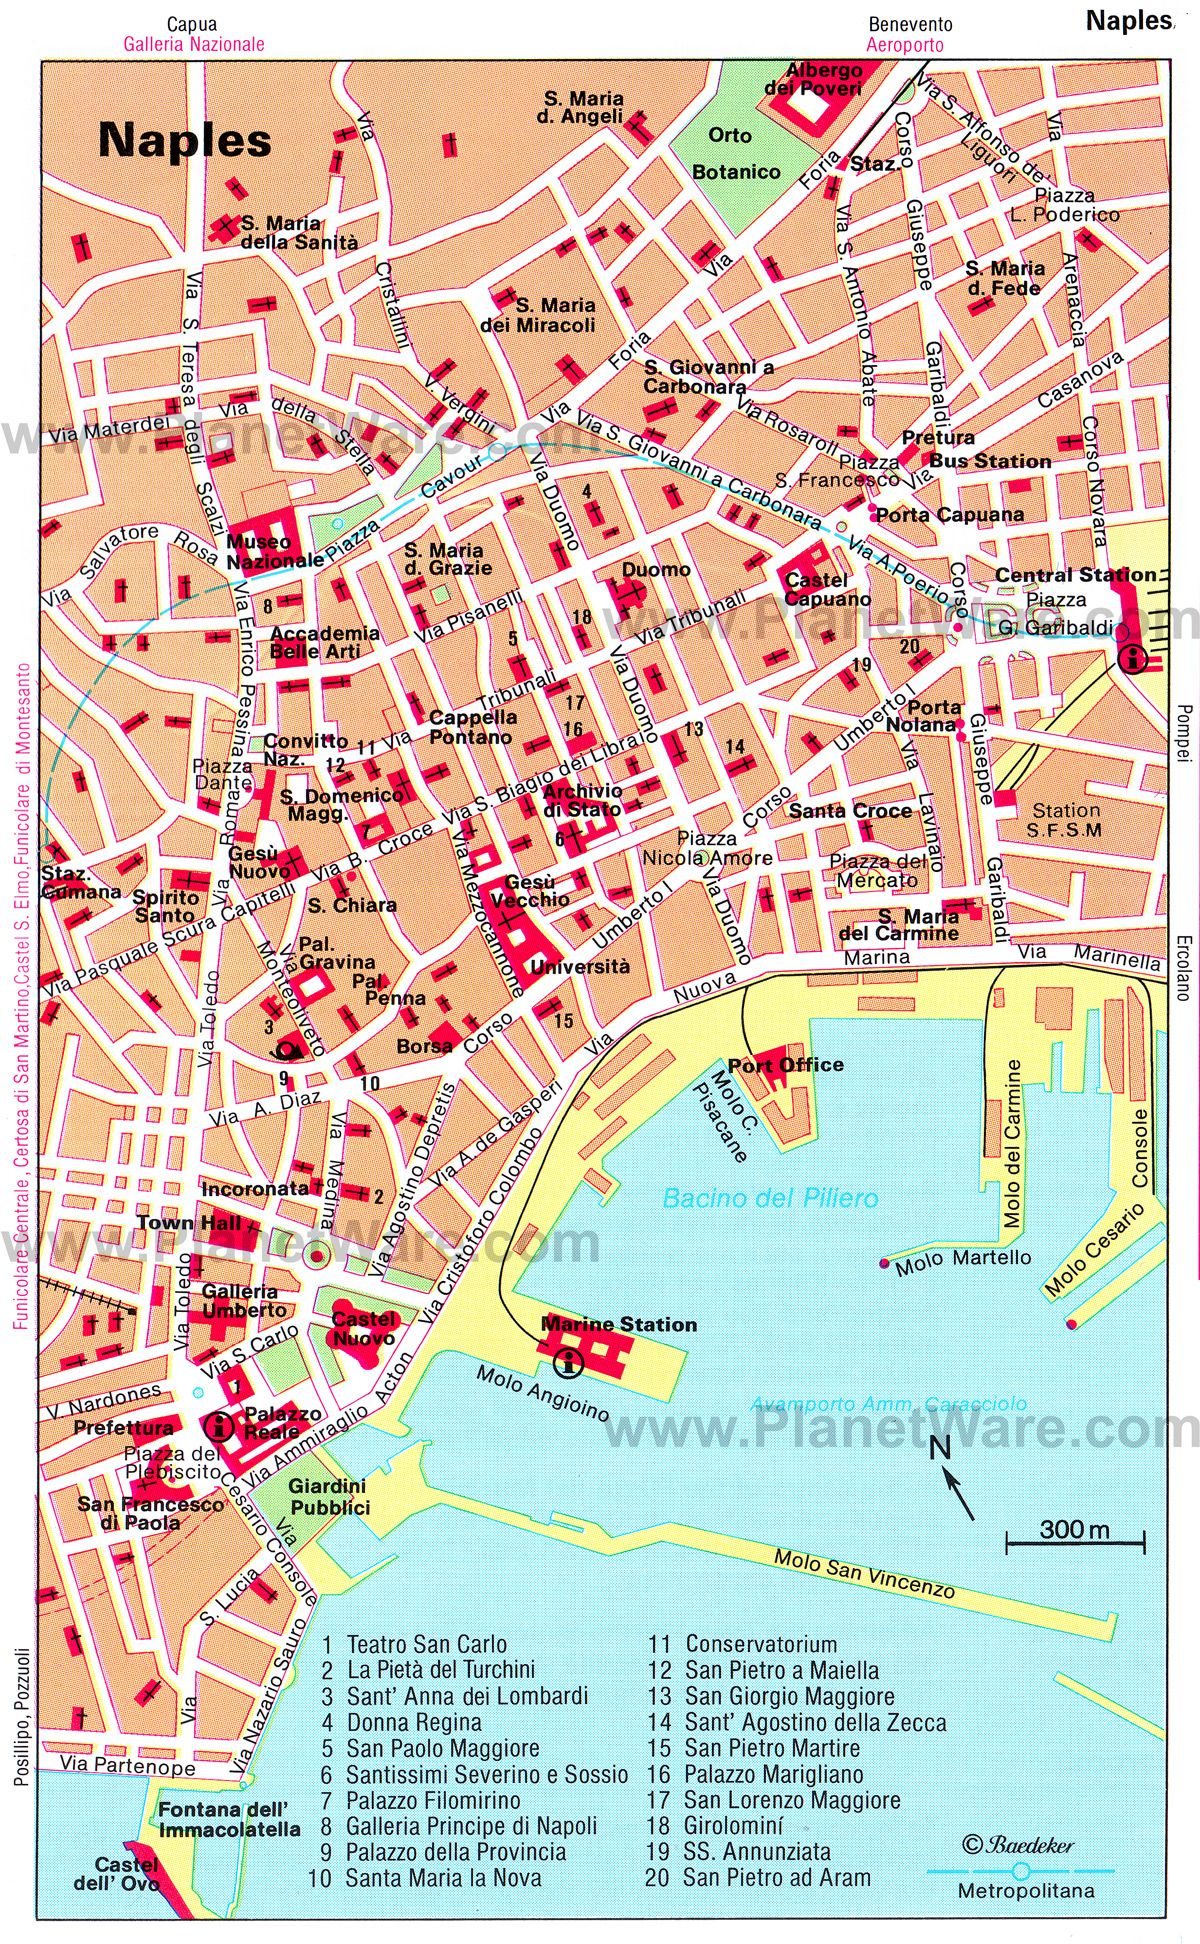 Naples Map - Tourist Attractions | Travel and Vacation Ideas ...